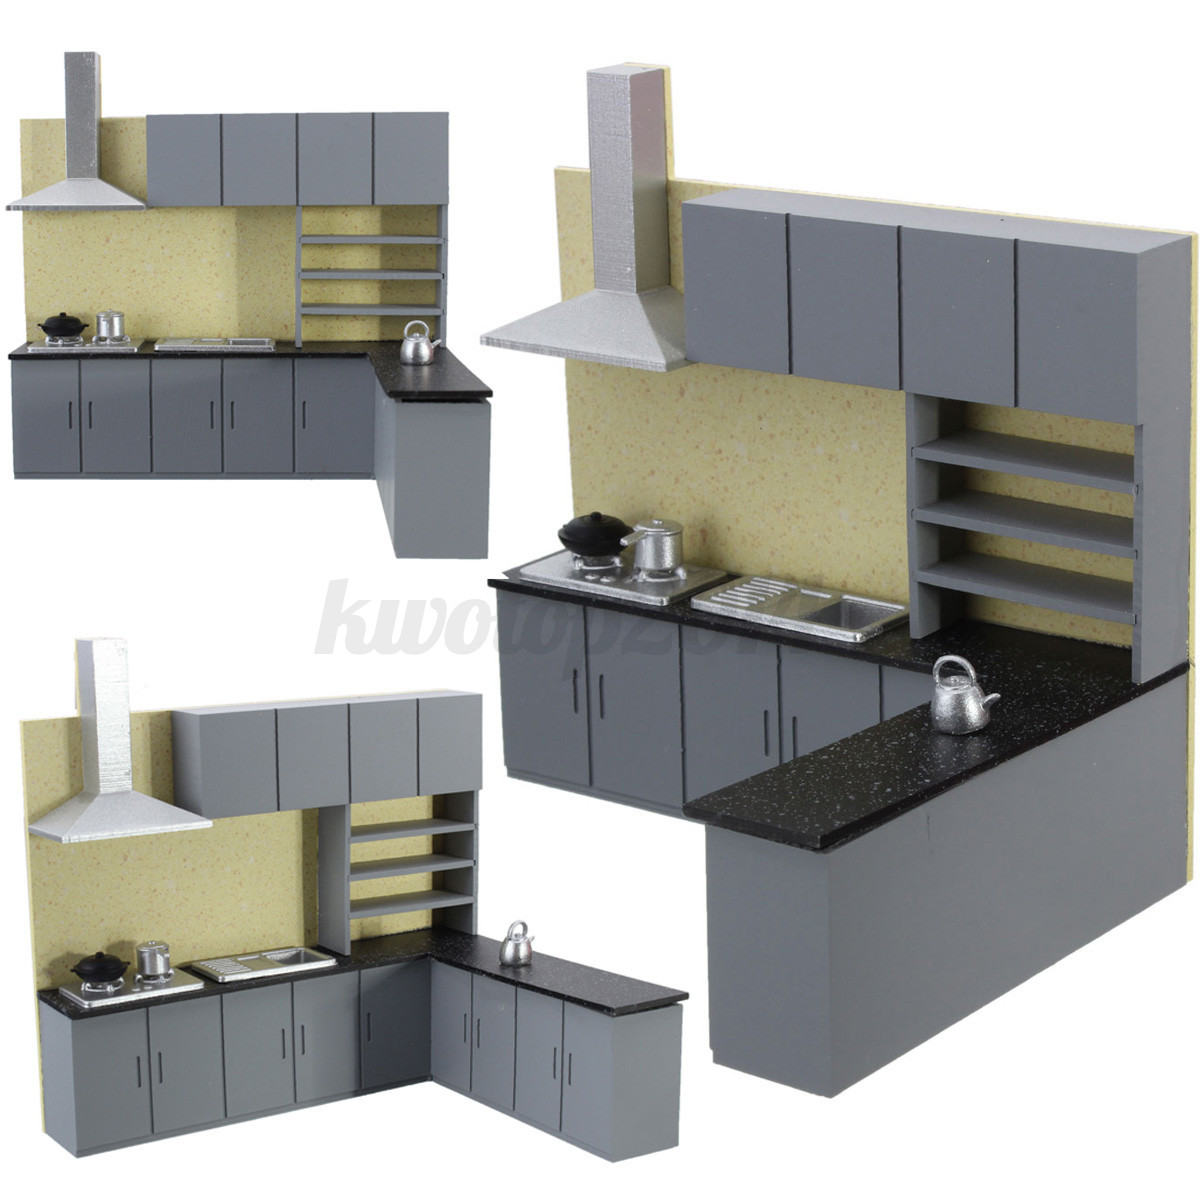 miniature kitchen cabinet set model kit furniture for art dollhouse 1 25 scale ebay. Black Bedroom Furniture Sets. Home Design Ideas